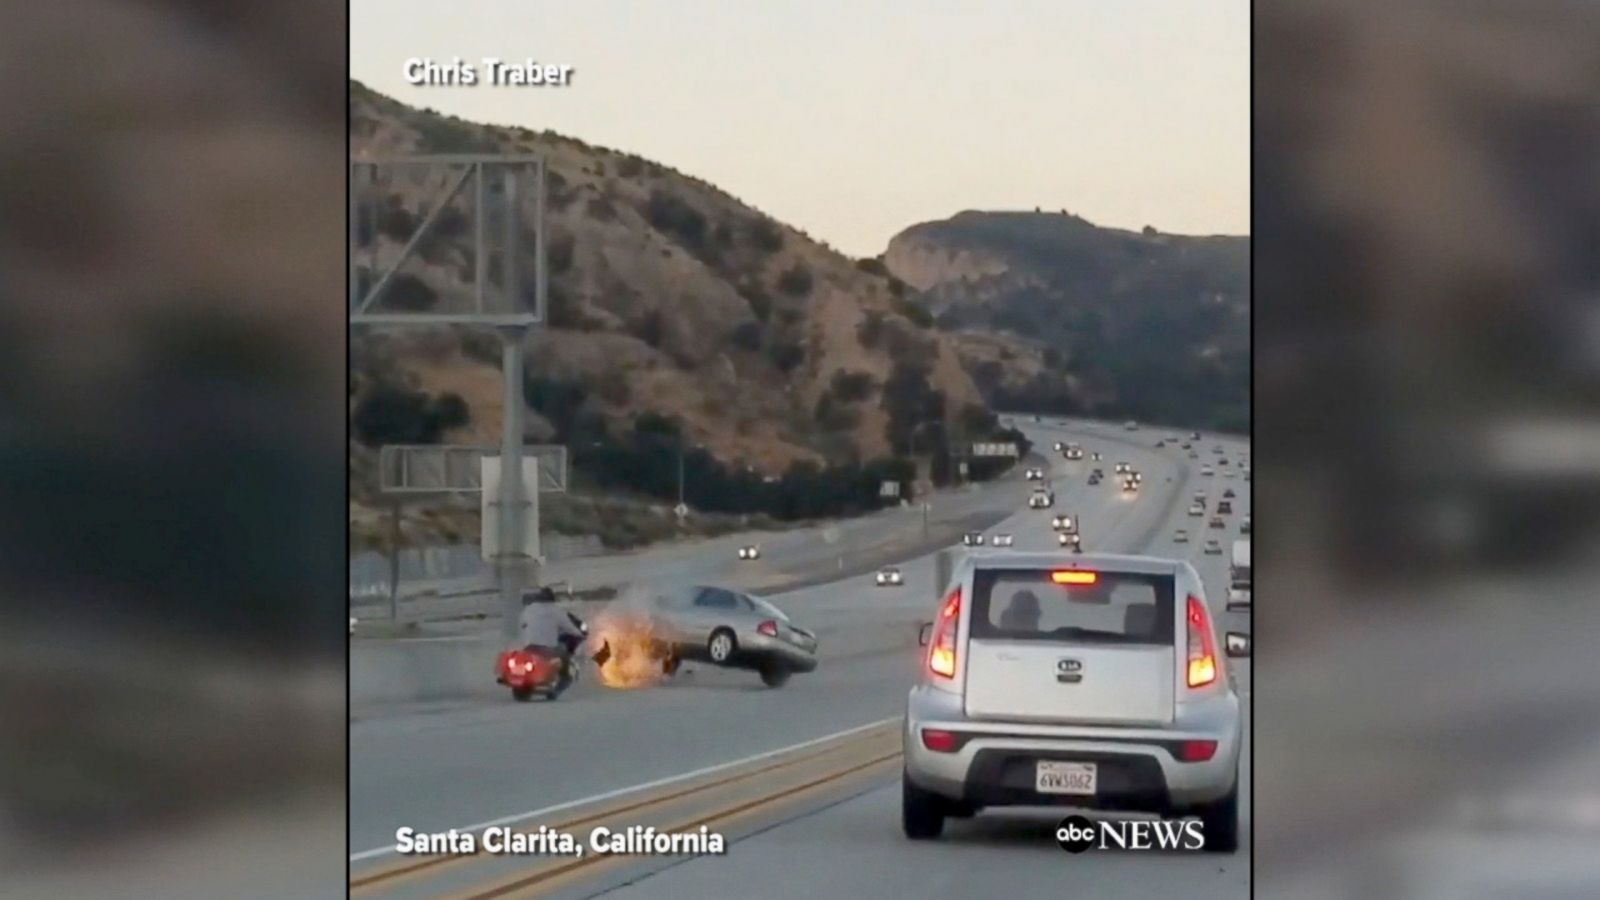 Dramatic Shows Alleged Road Rage Incident On California Highway Abc News